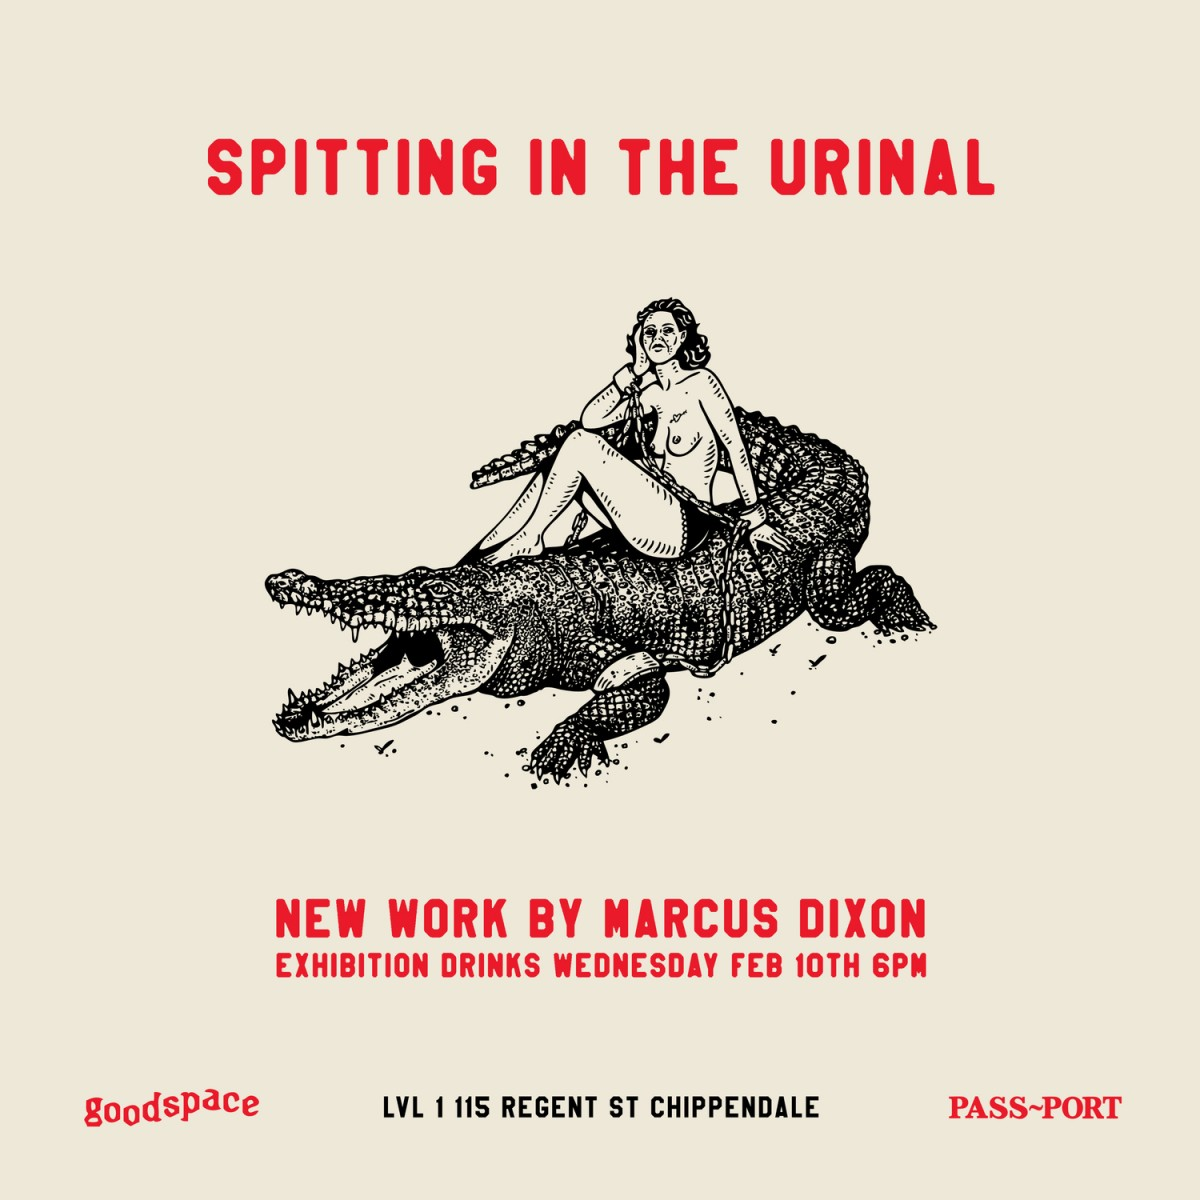 SPITTING IN THE URINAL - New work by MARCUS DIXON | Sydney exhibition tonight!!